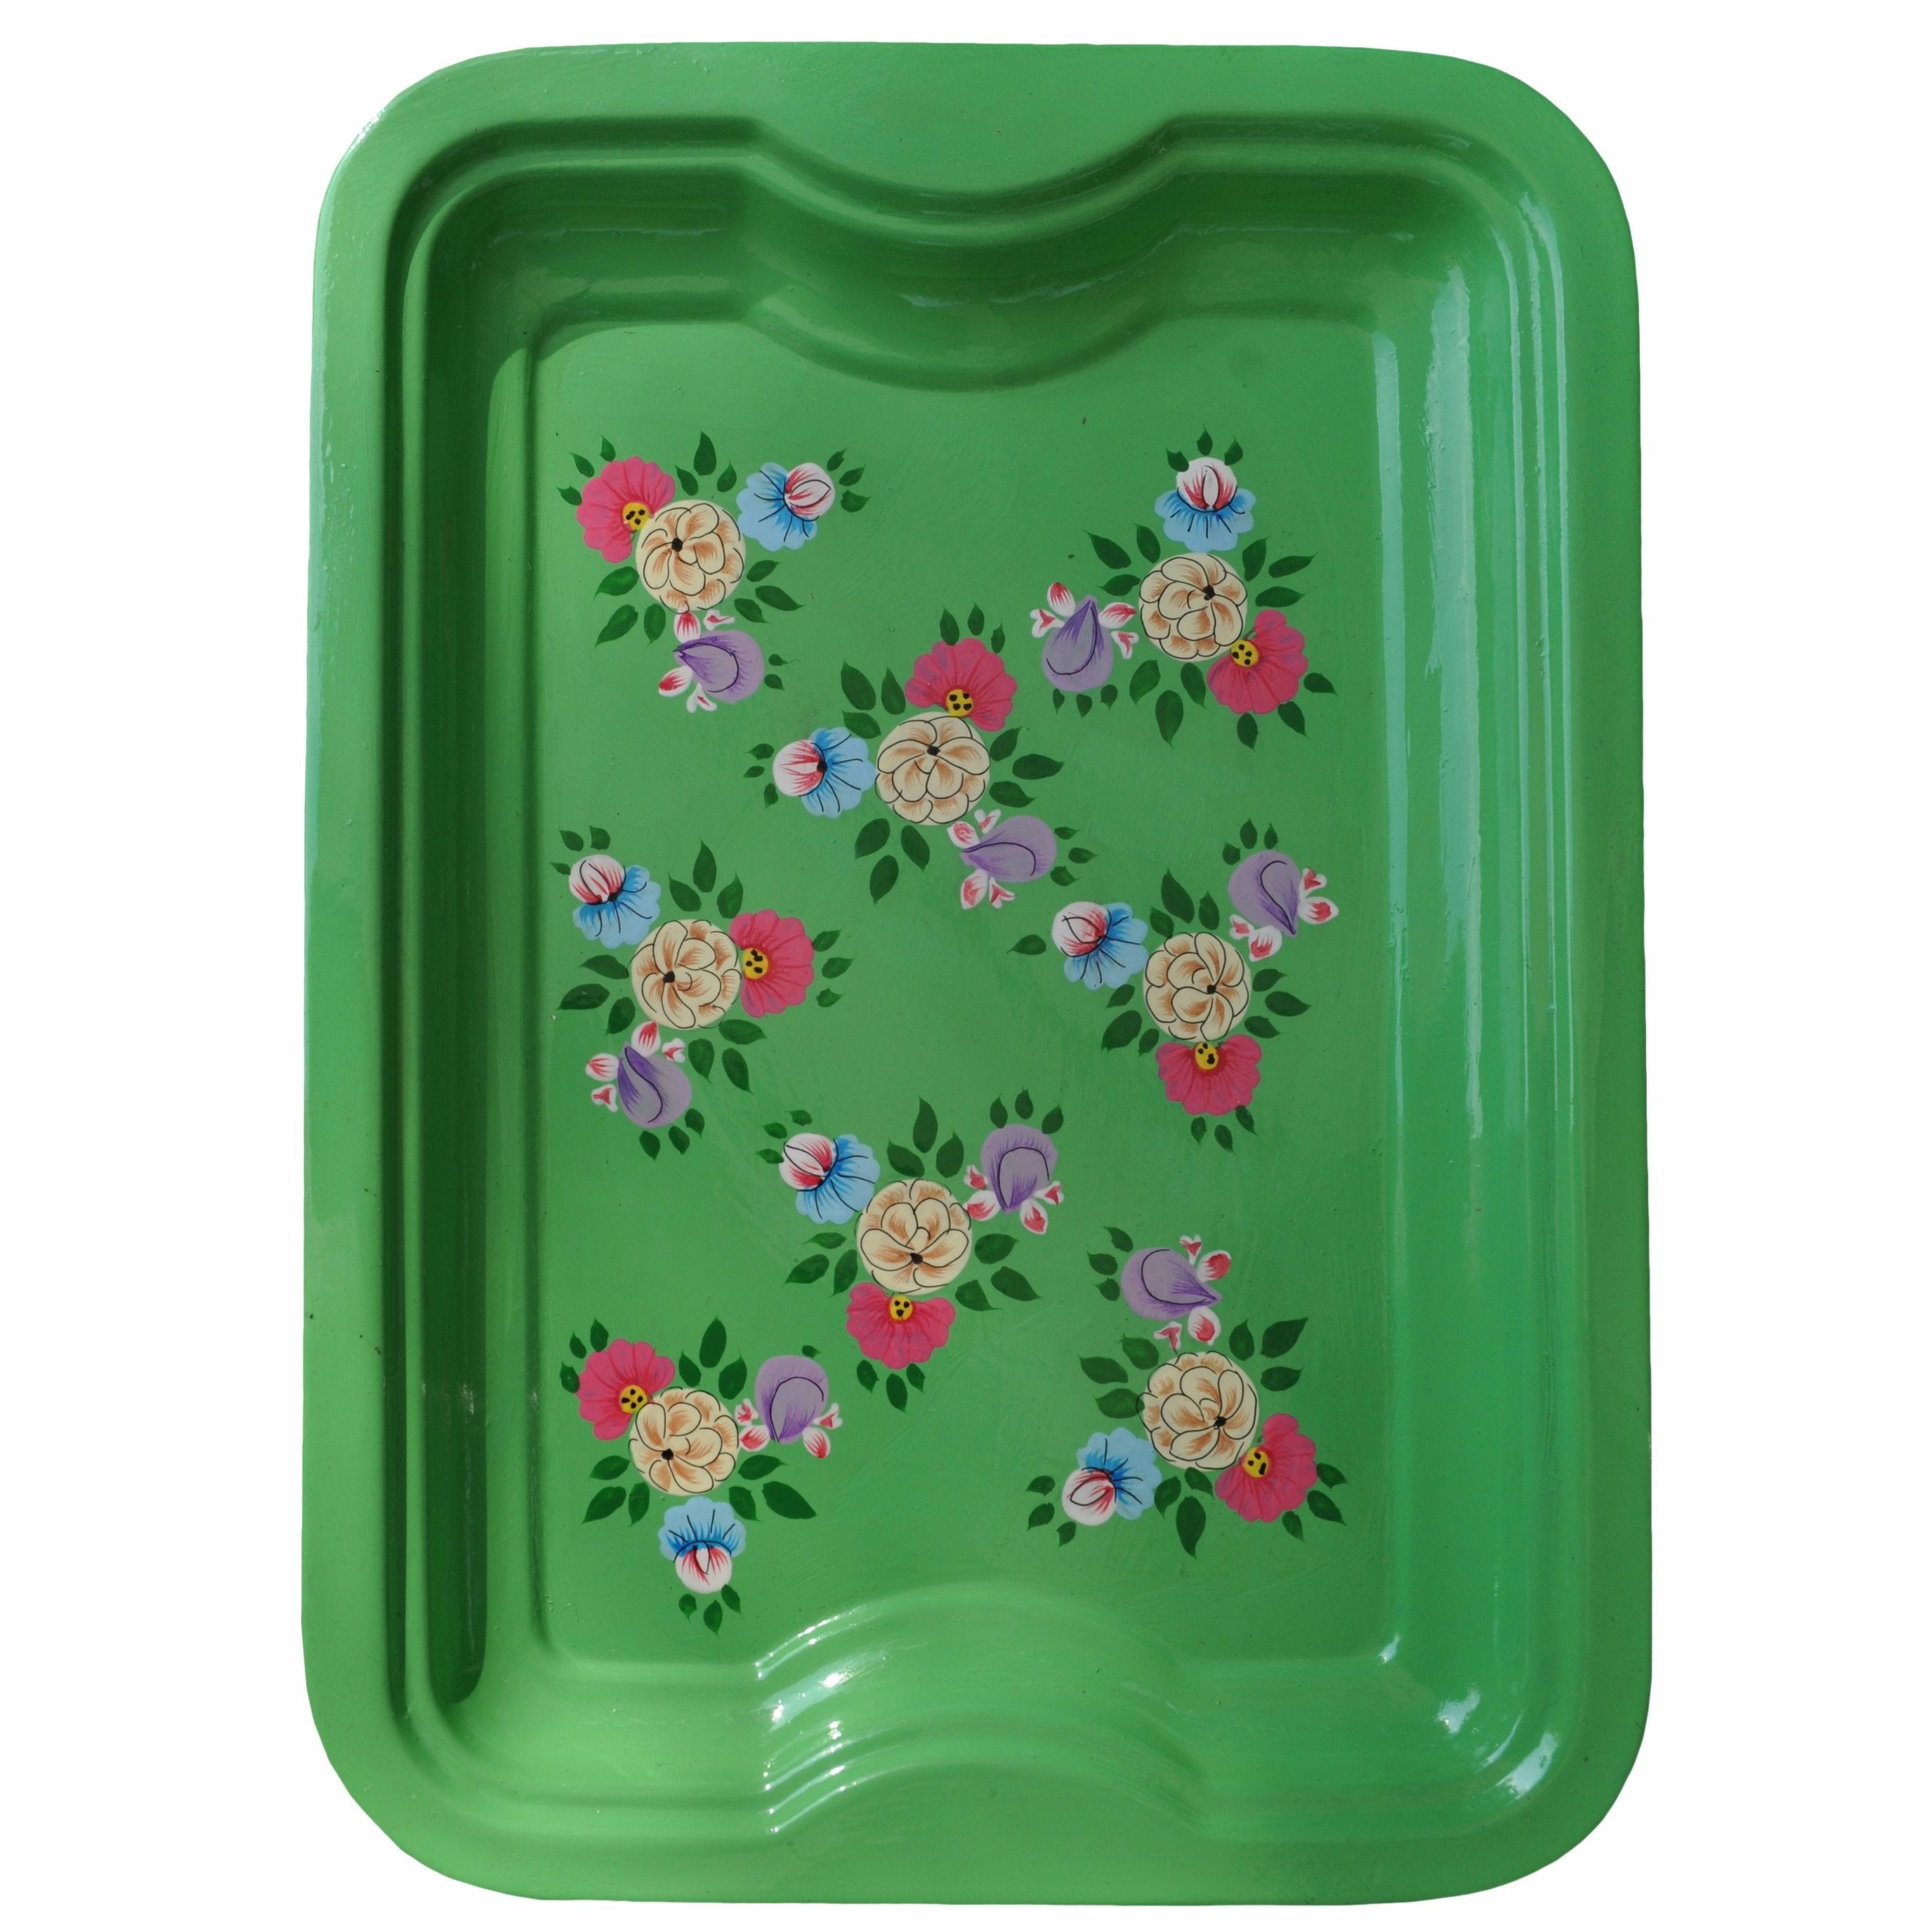 Bright Green Floral Enamelware Rectangular Tray by Jasmine White on OOSTOR.com